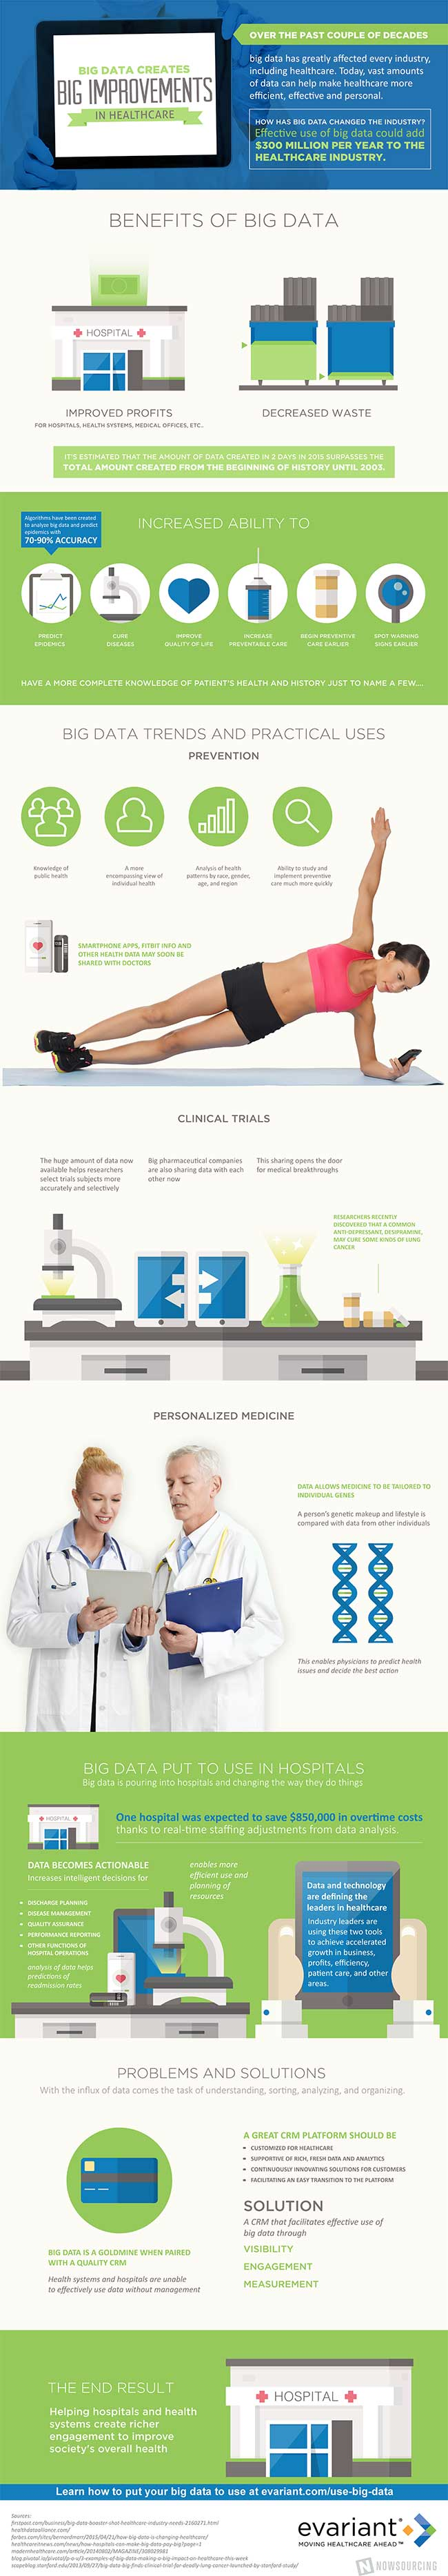 big-data-in-healthcare-how-hospital-wifi-networks-can-improve-operational-efficiency-in-healthcare-infographic.jpg